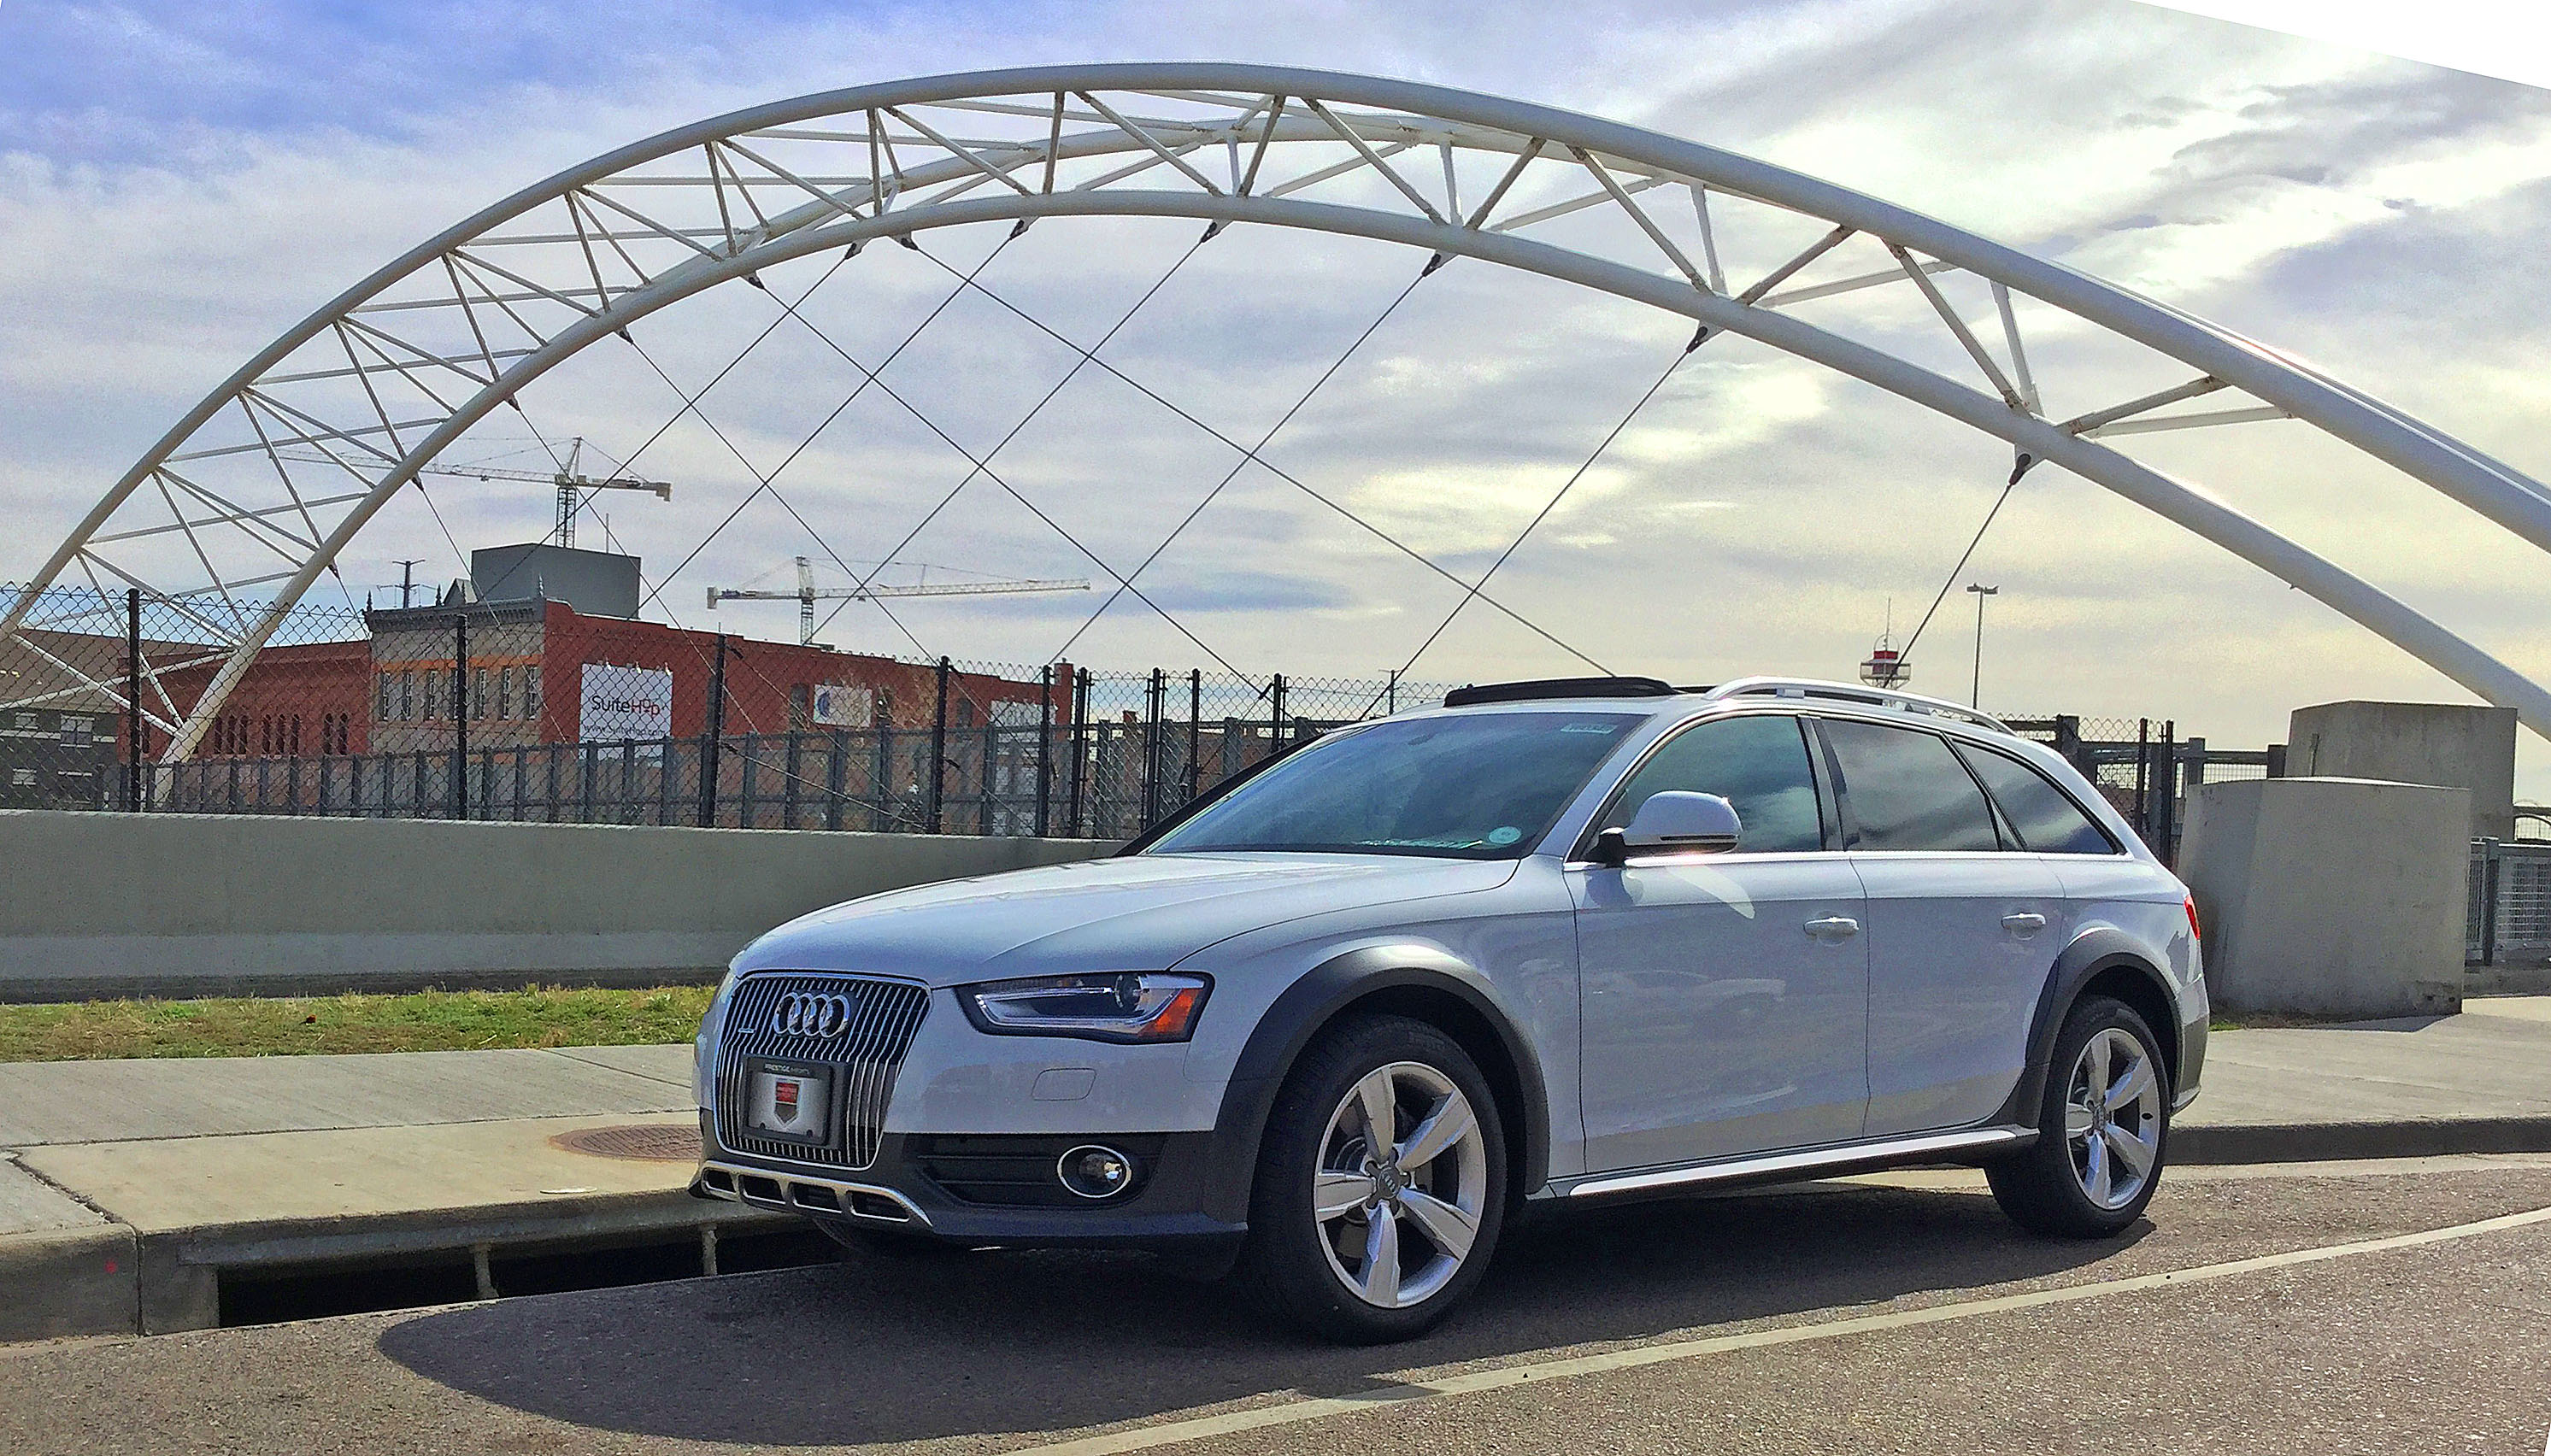 An Audi allroad sits in front of a pedistrian bridge in Denver's Highland Neighborhood